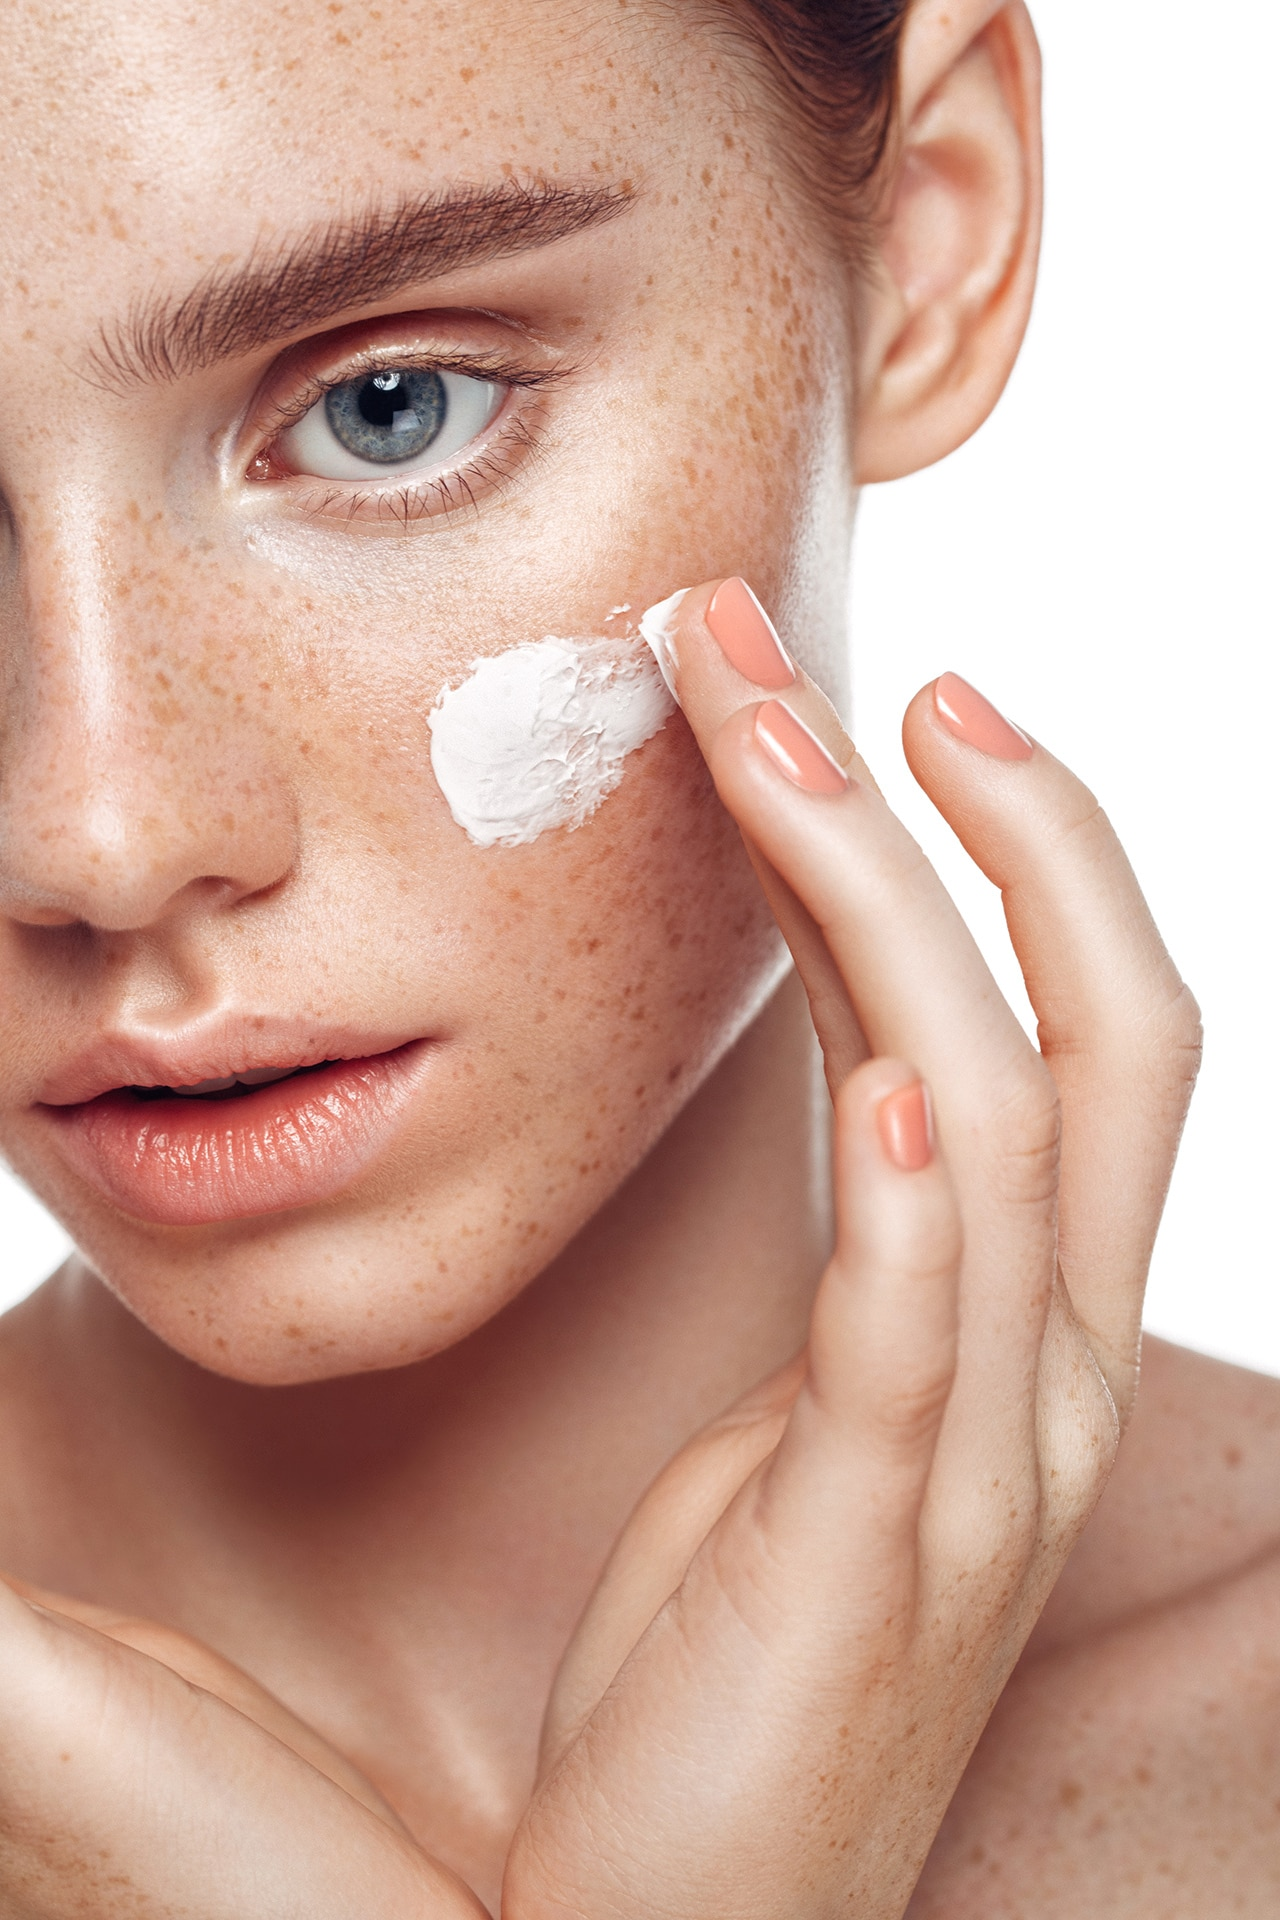 Bakuchiol: what you need to know about the skincare ingredient